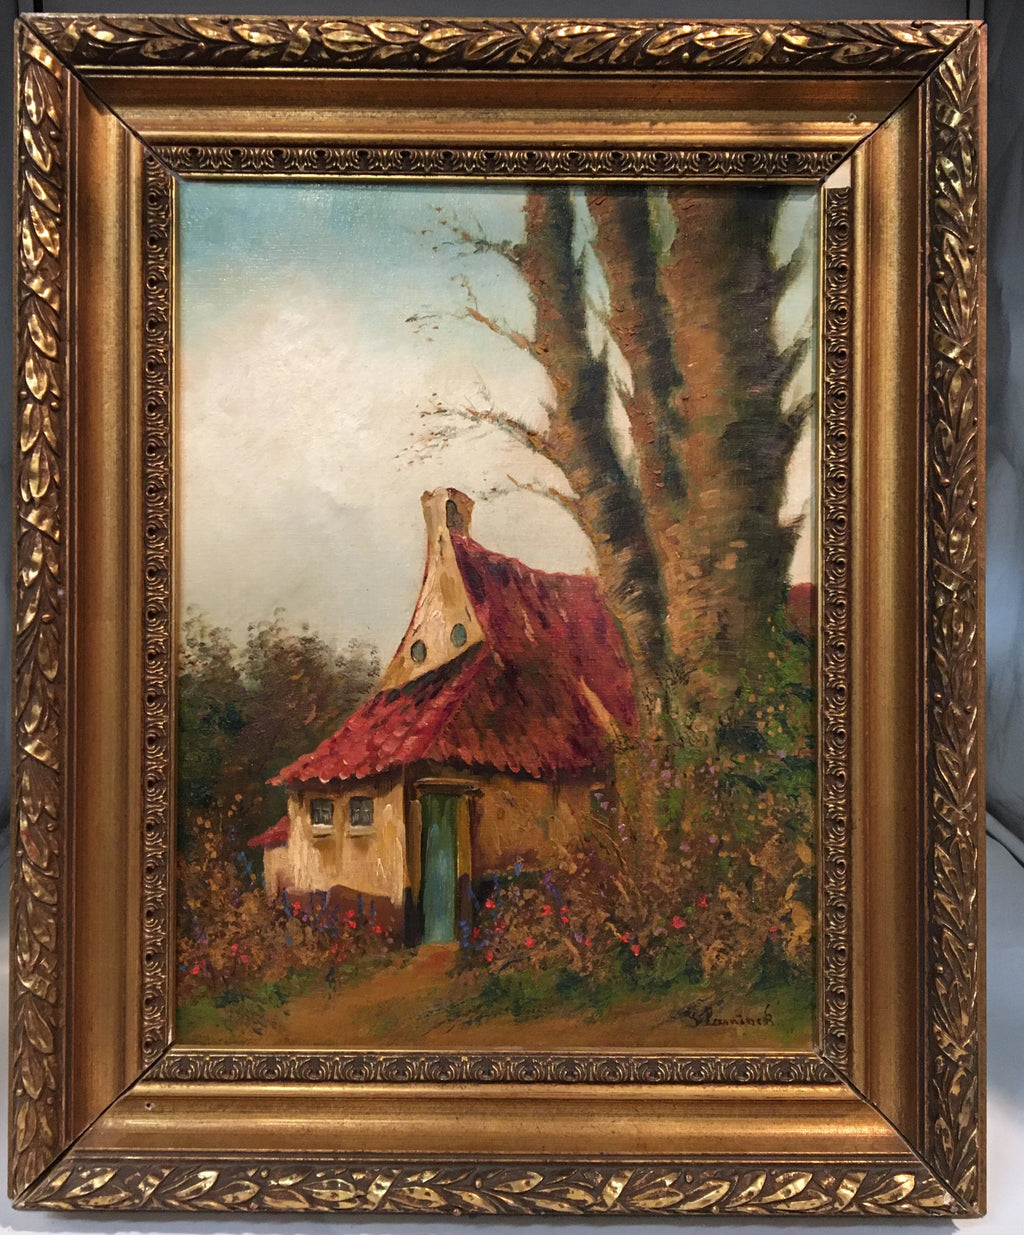 FRAMED OIL PAINTING OF HOUSE WITH RED ROOF